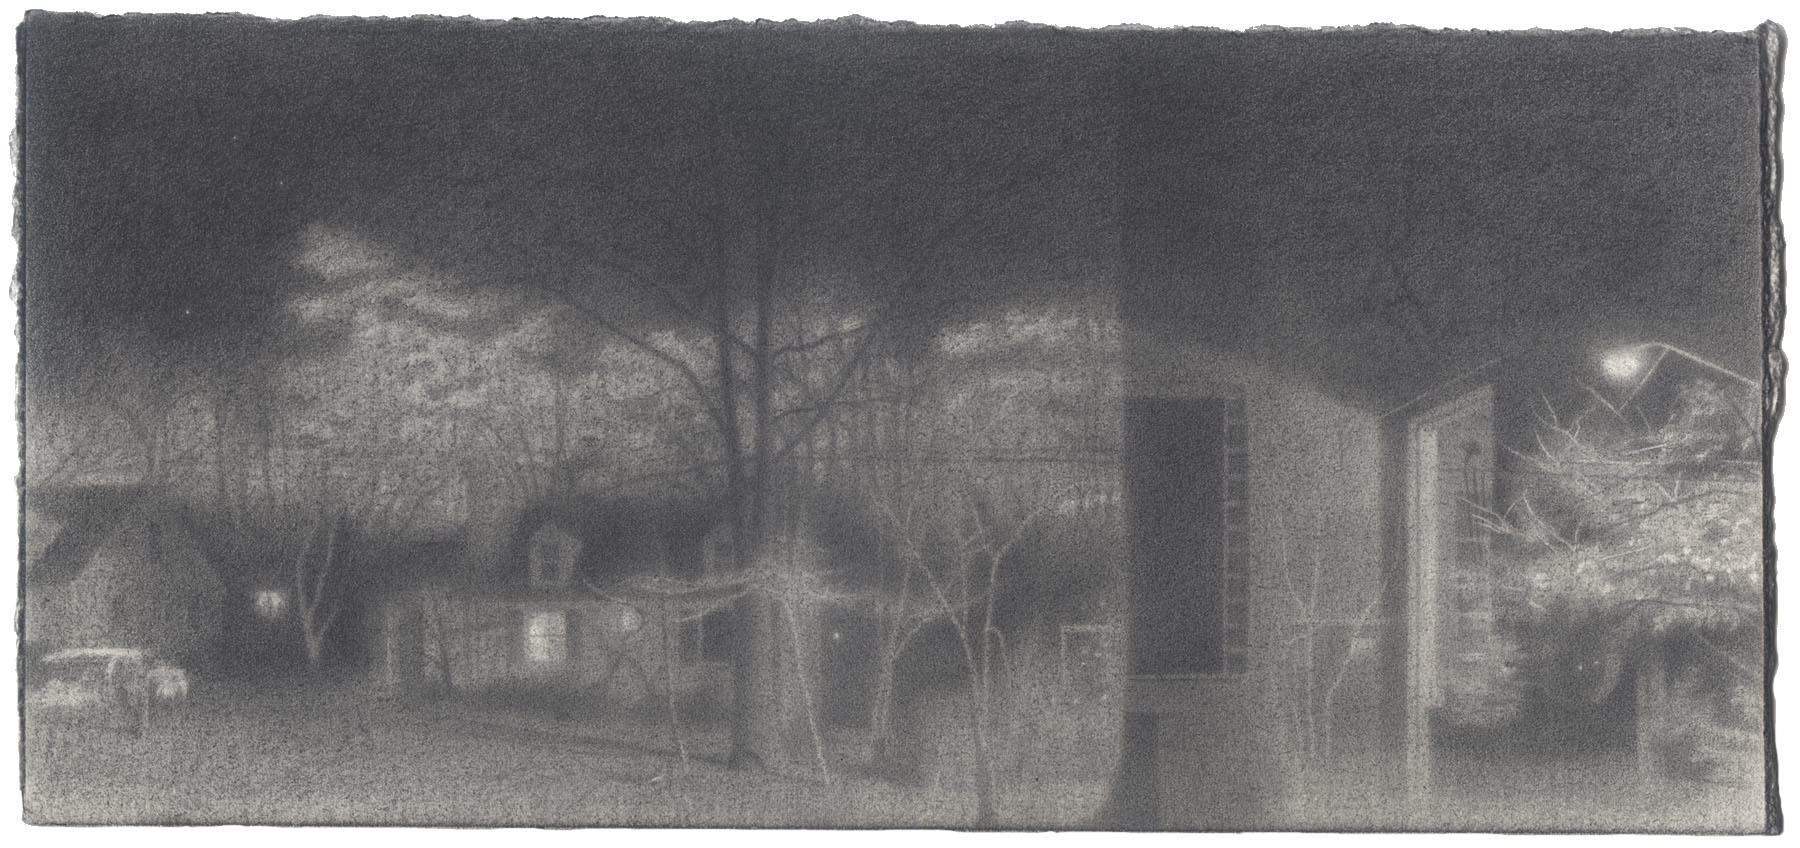 Self-Portrait with Night XI: Graphite image